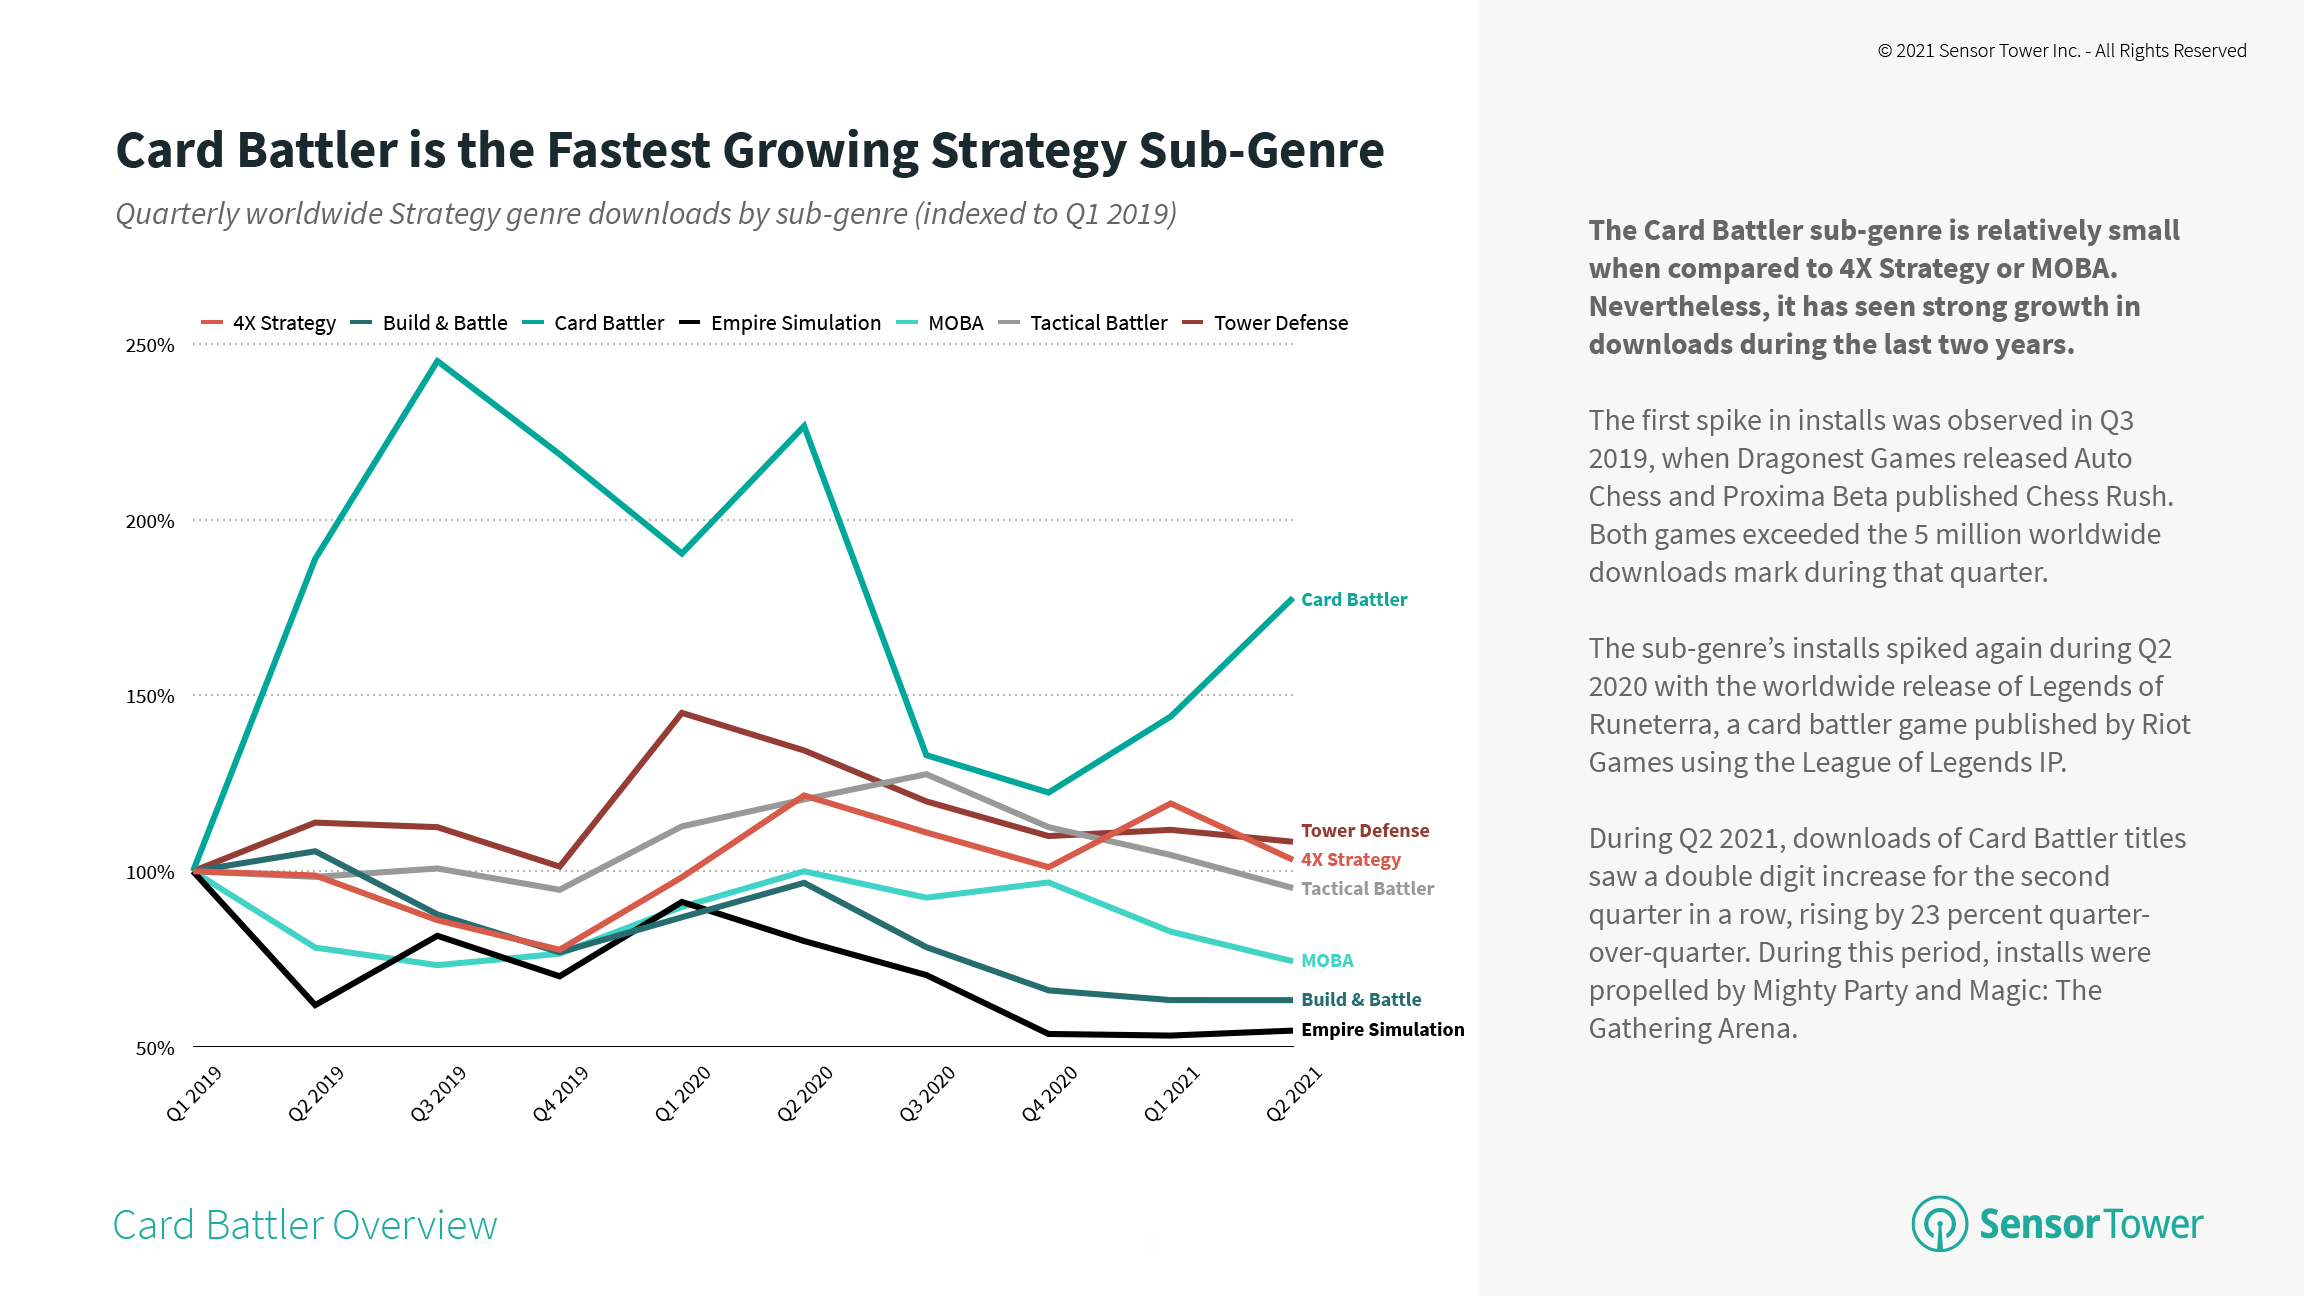 Quarterly Strategy Game Downloads by Sub-Genre